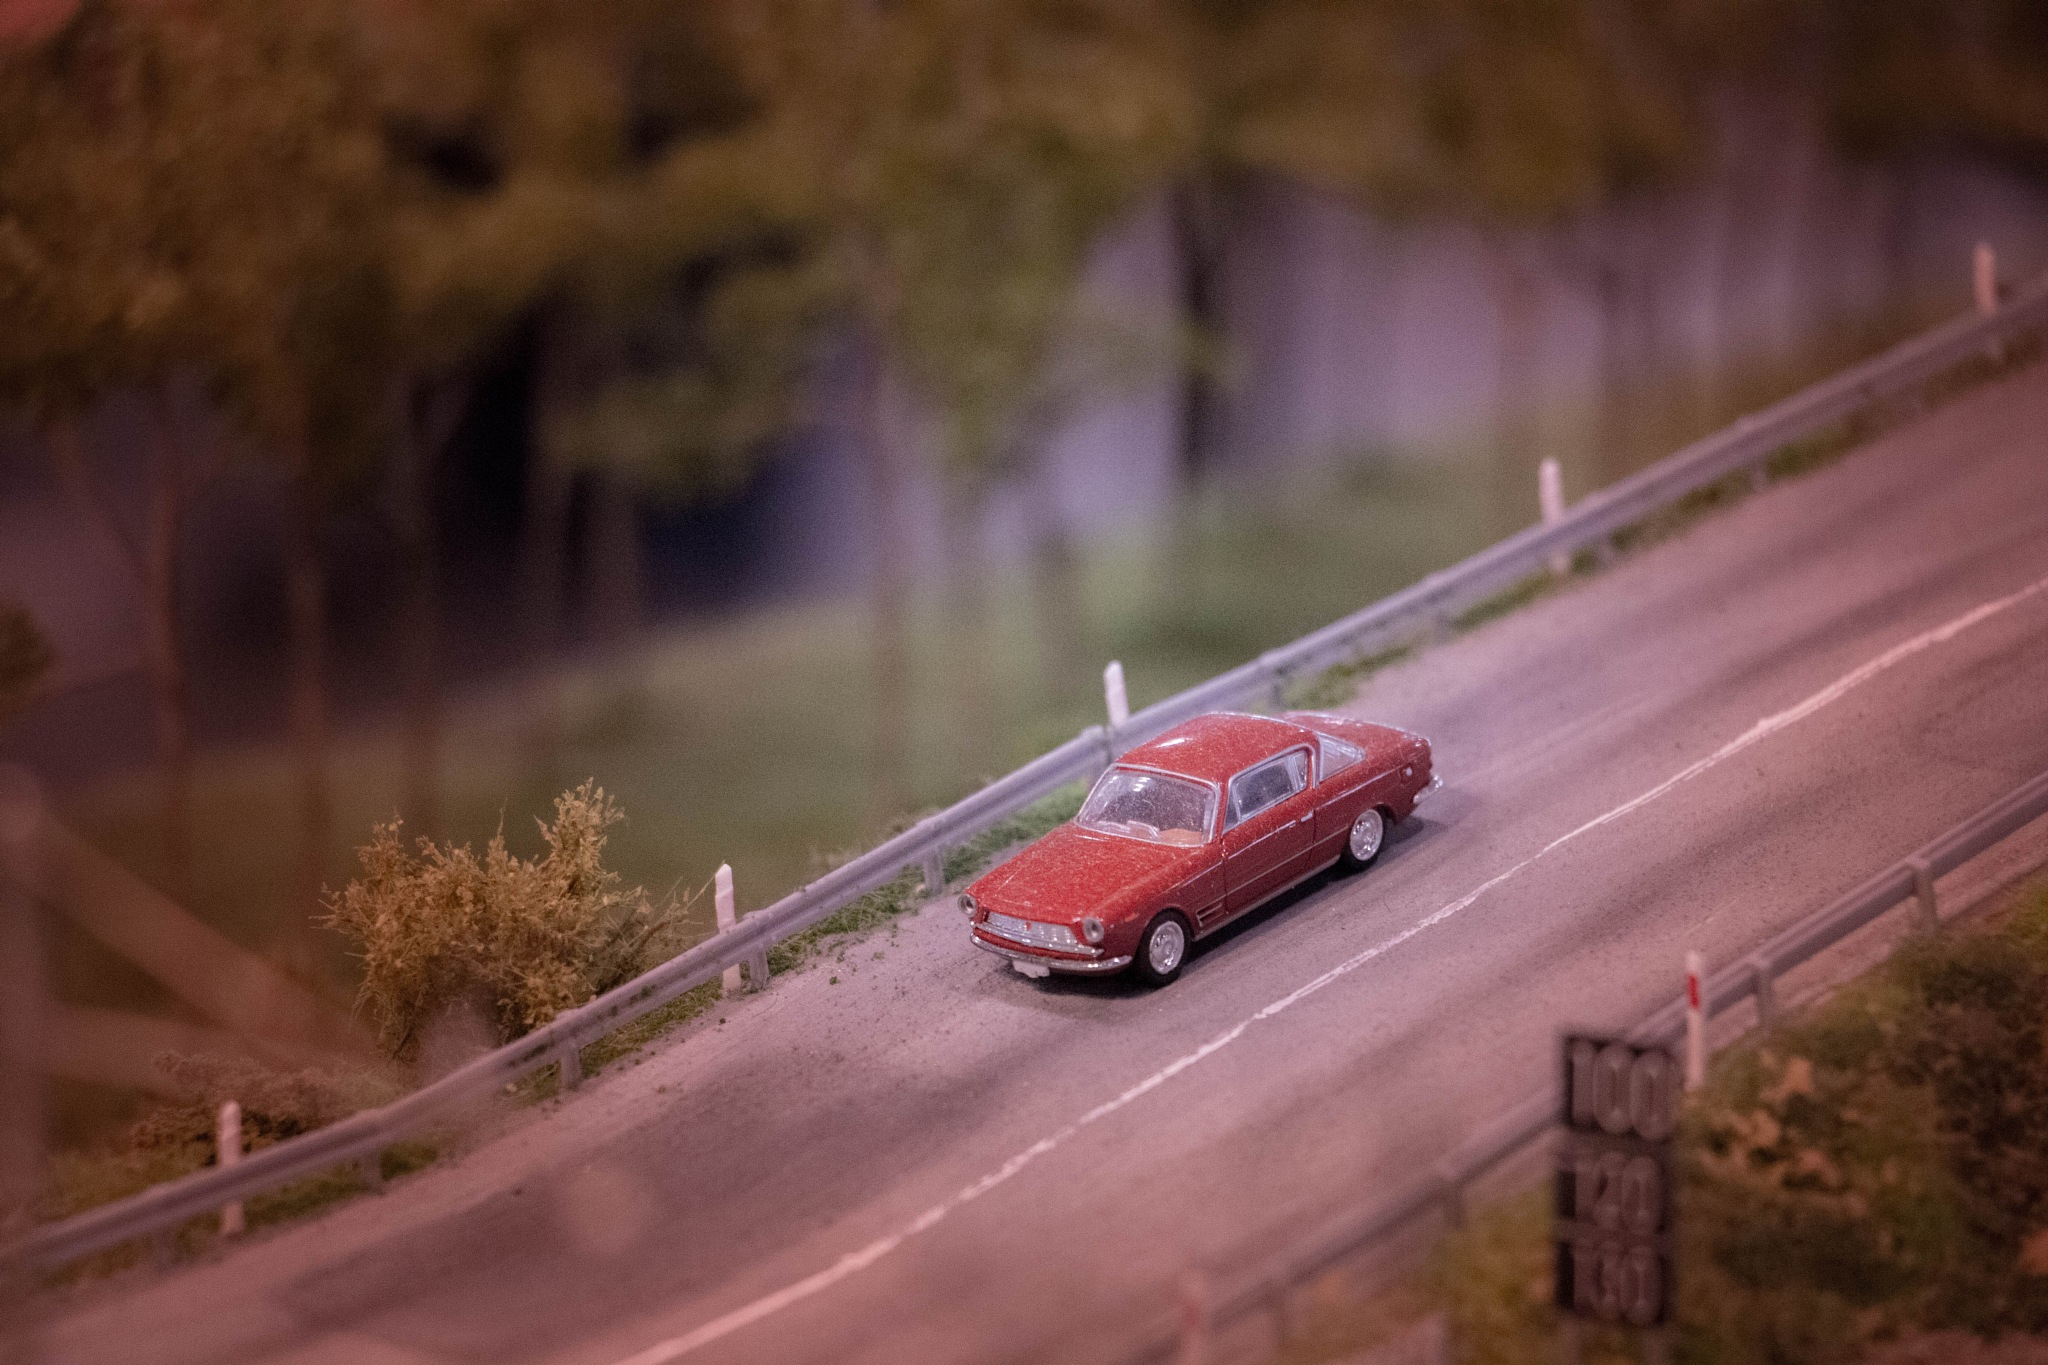 miniature scene by RistylePhotography